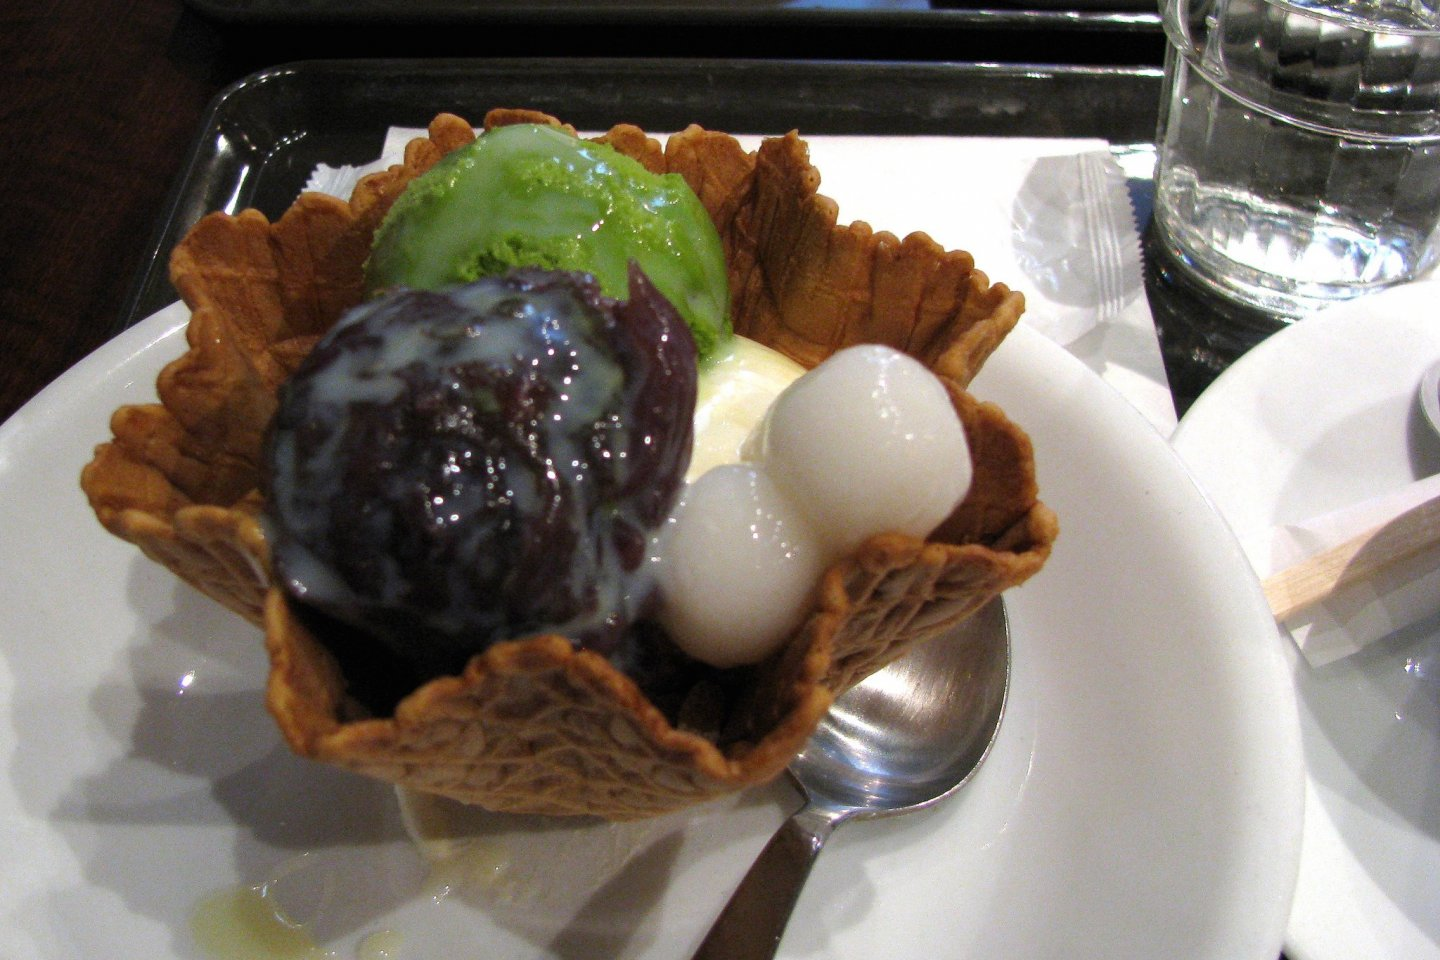 Dessert with ice cream and dango. Note the waffle bowl.